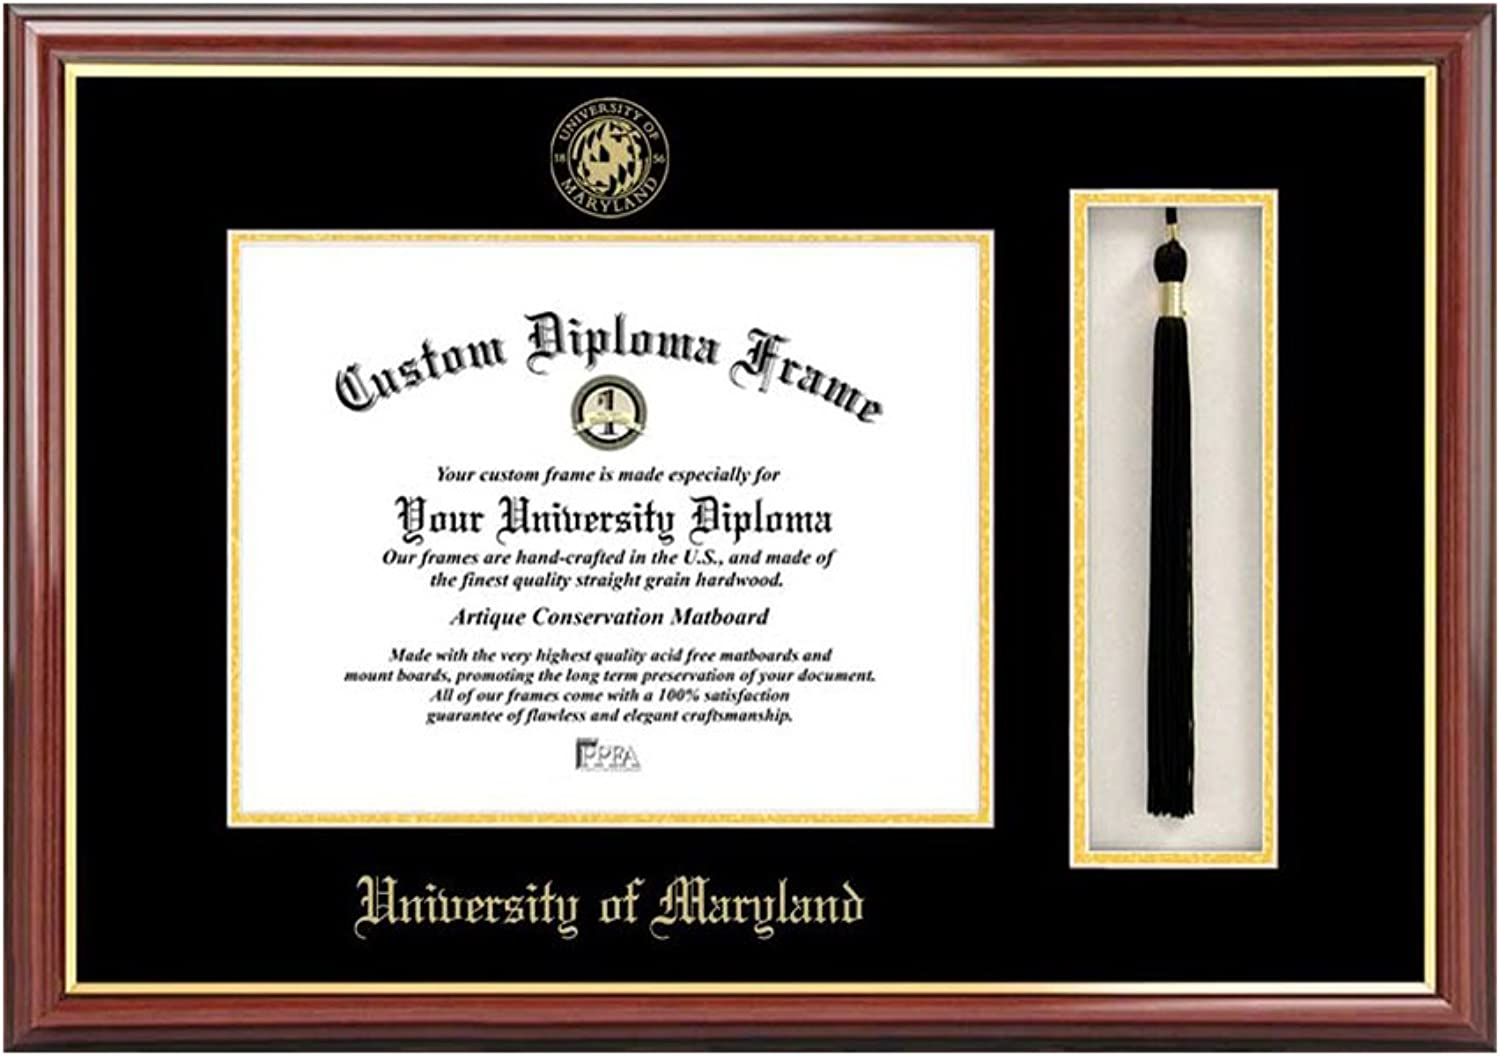 University of Maryland Tassel Box and Diploma Frame